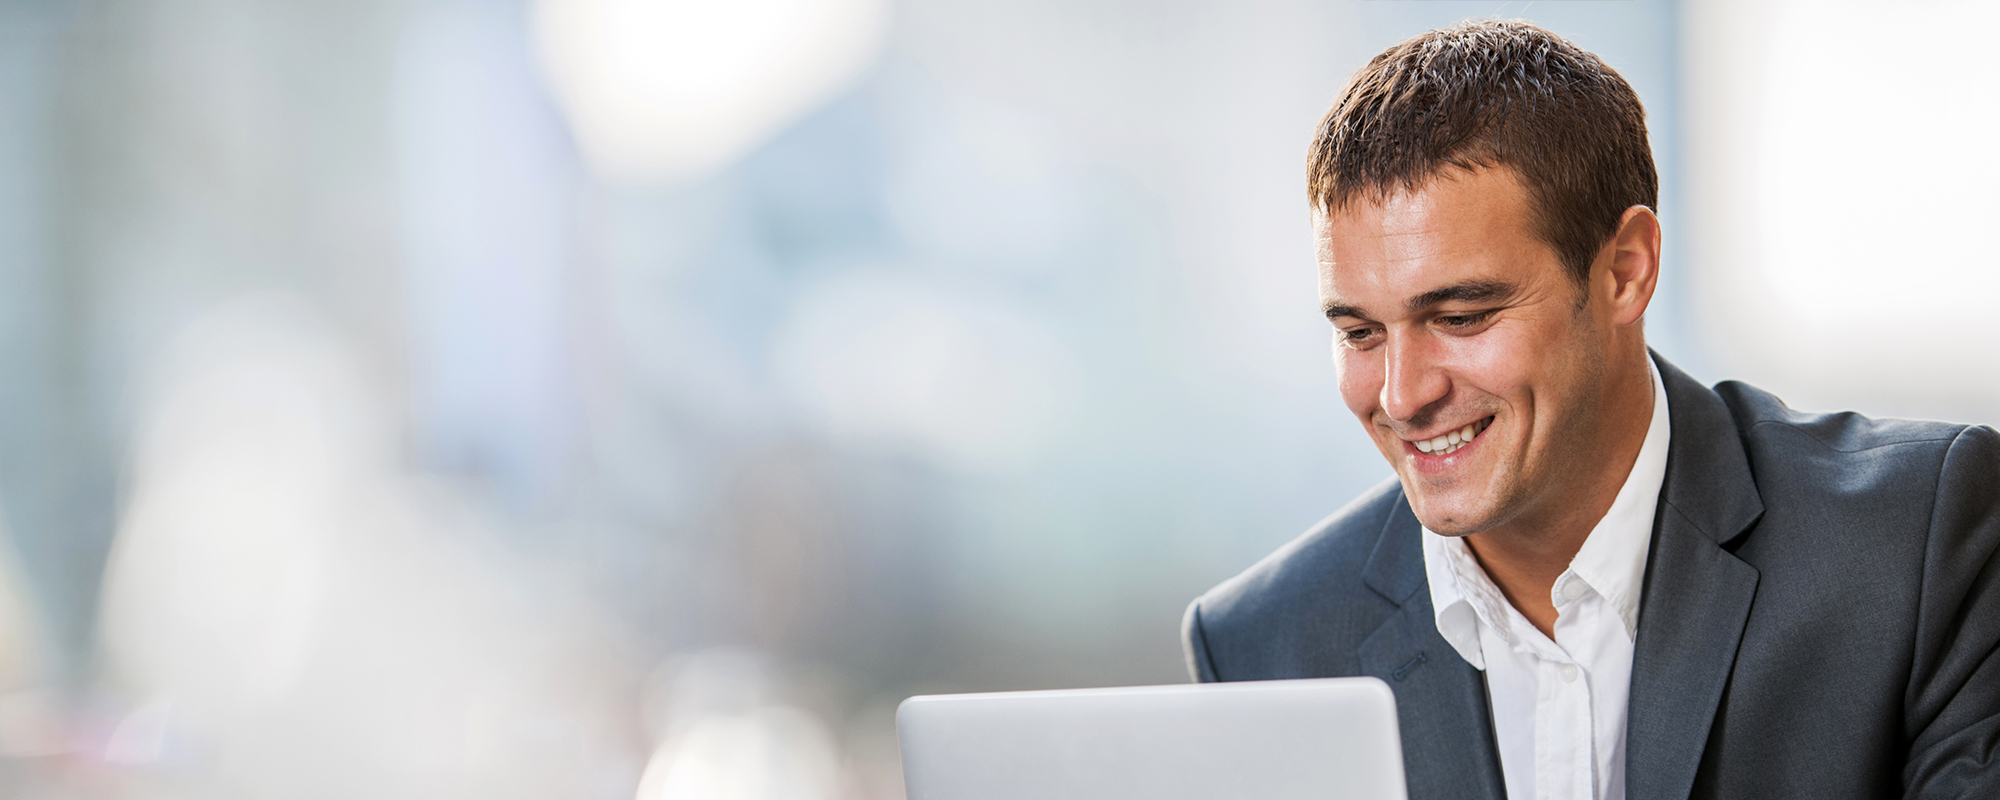 Man looking at computer, using Wolters Kluwer Solutions